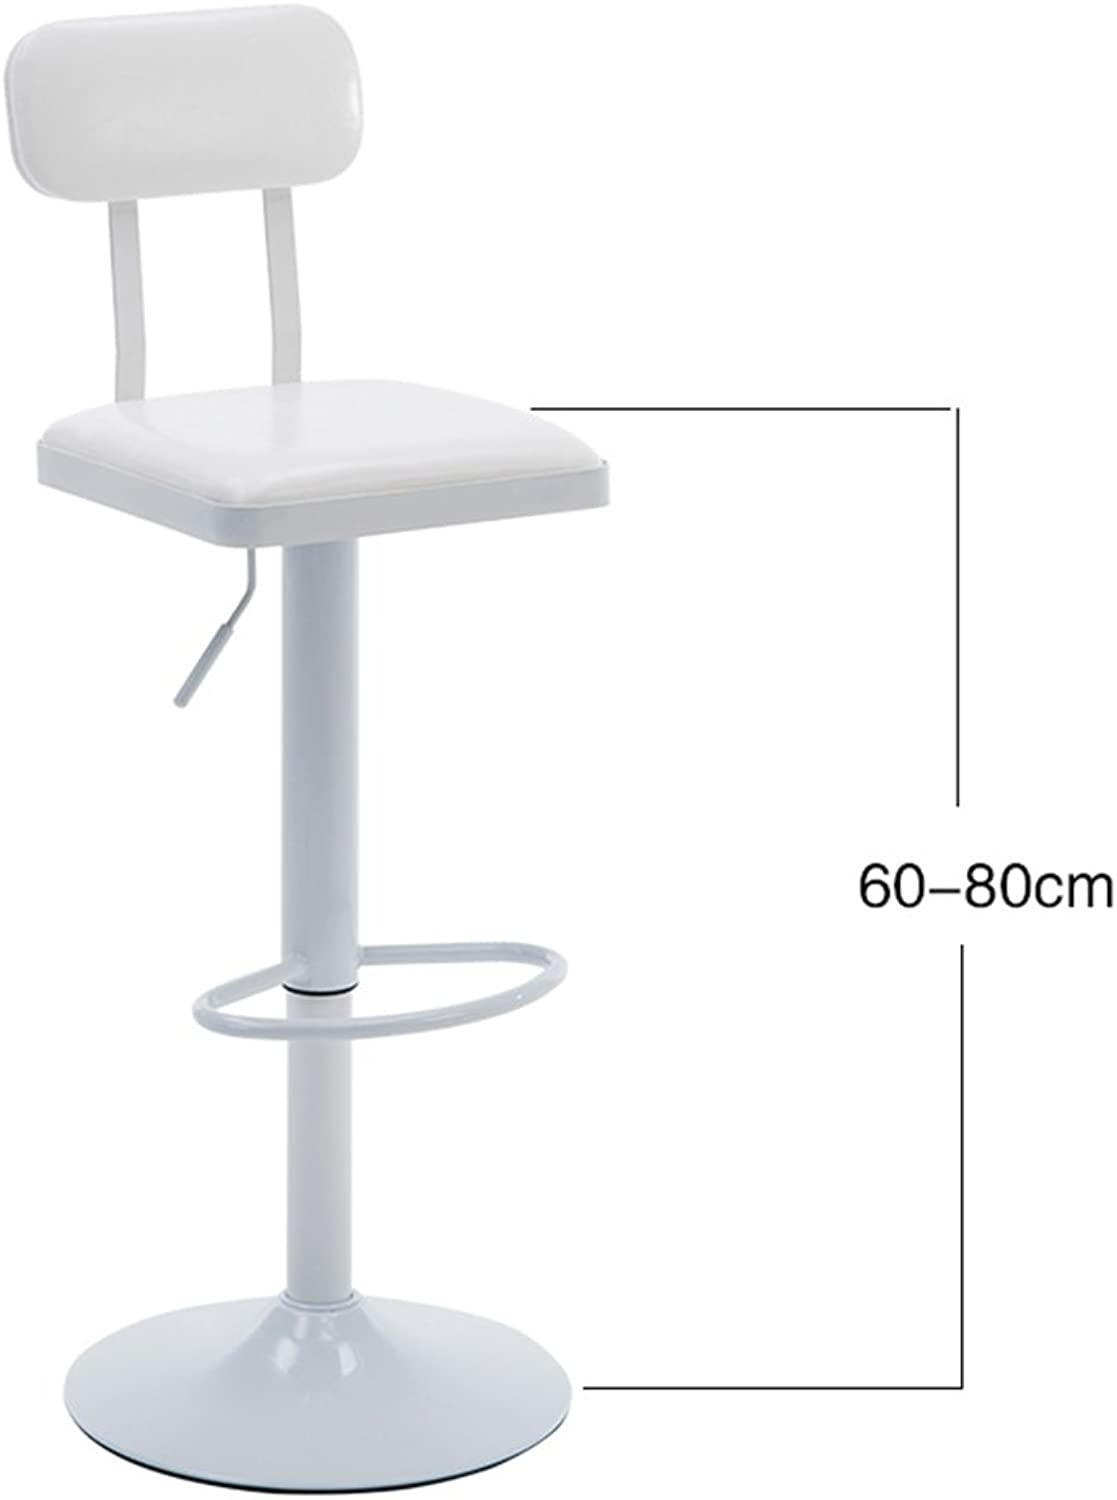 DQMS Retro Bar Stool Kitchen Cafe Dining Chair Comfortable Leather Backrest High Stool Lift Swivel Chair (color   4 )